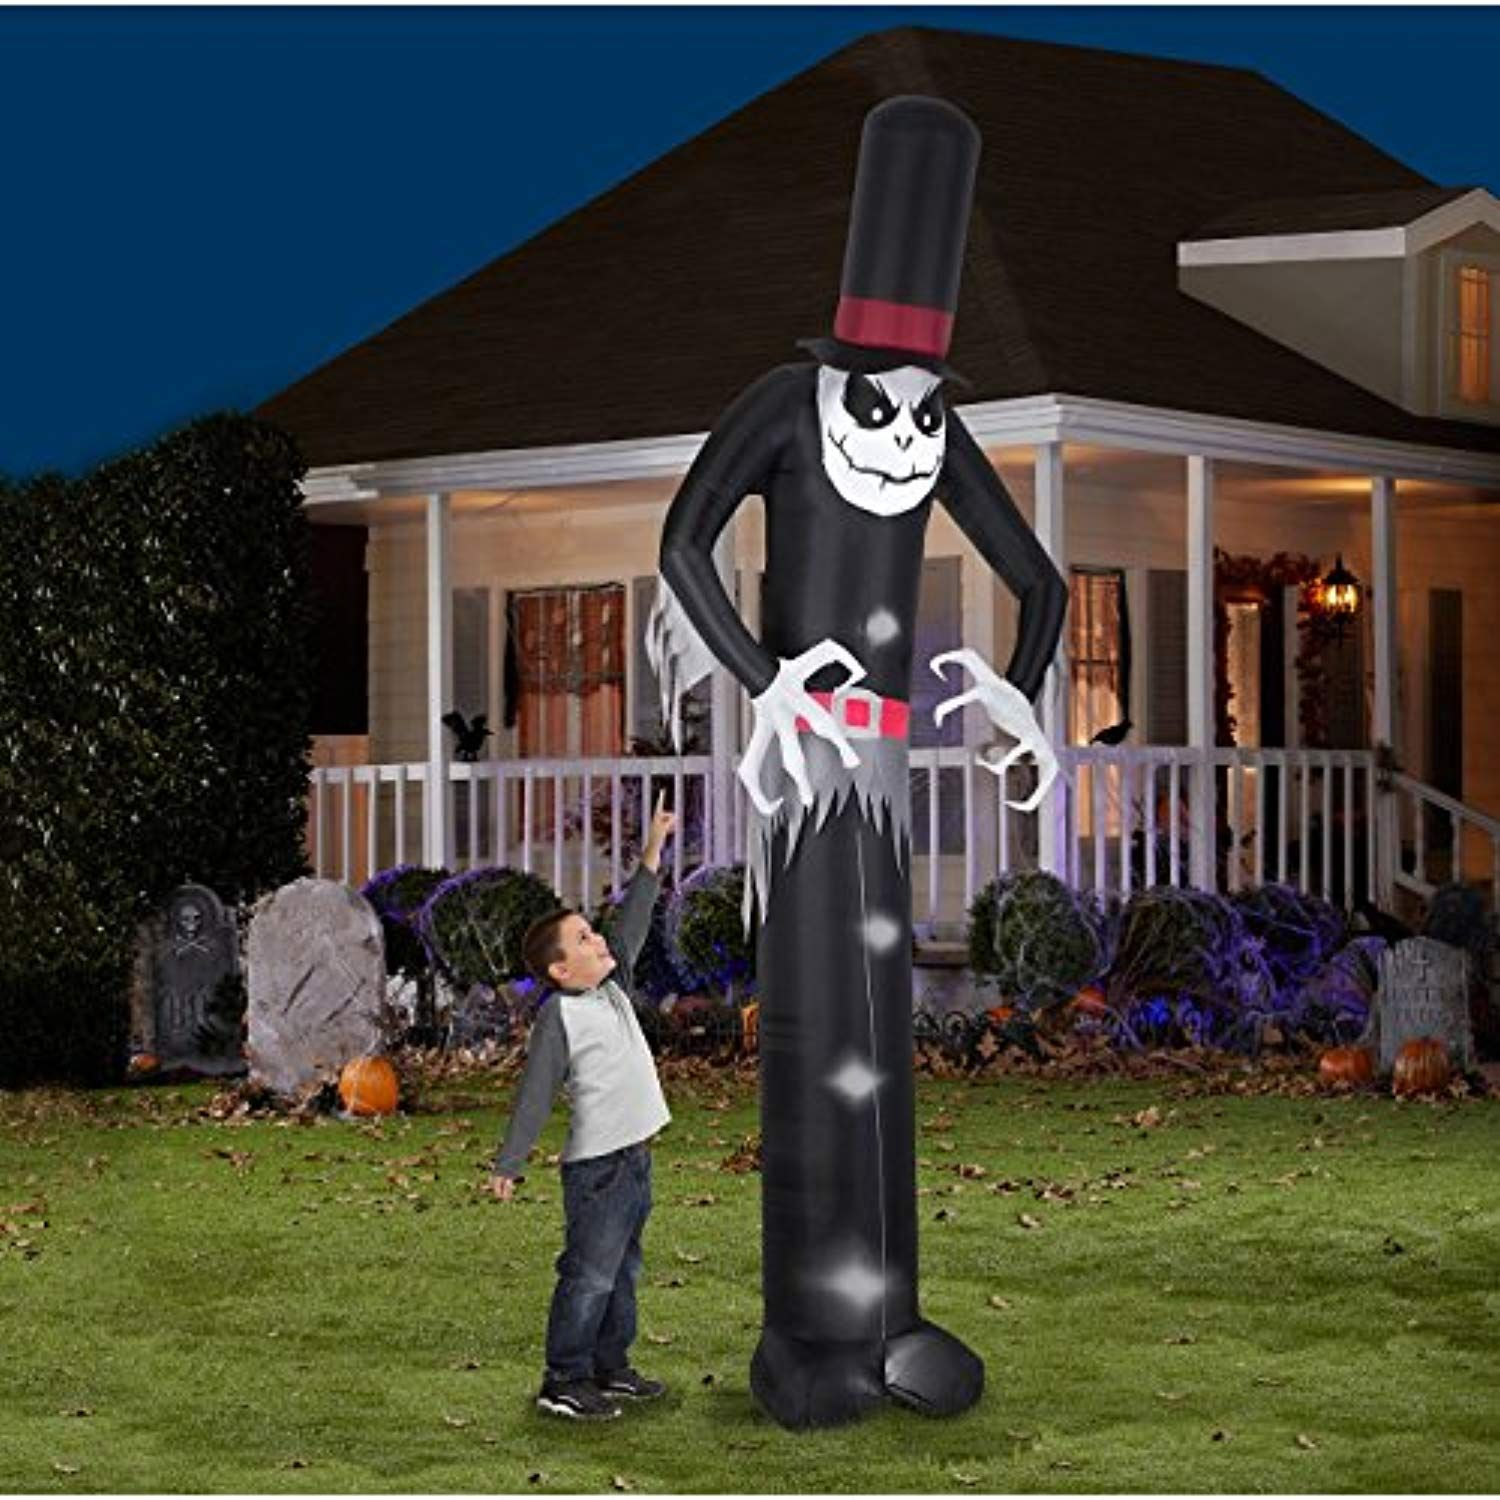 Gemmy Airblown Inflatable Mr Skeleton Wearing Top Hat Indoor Outdoor Holiday Halloween Yard Decorations Outdoor Holiday Decor Halloween Outdoor Decorations